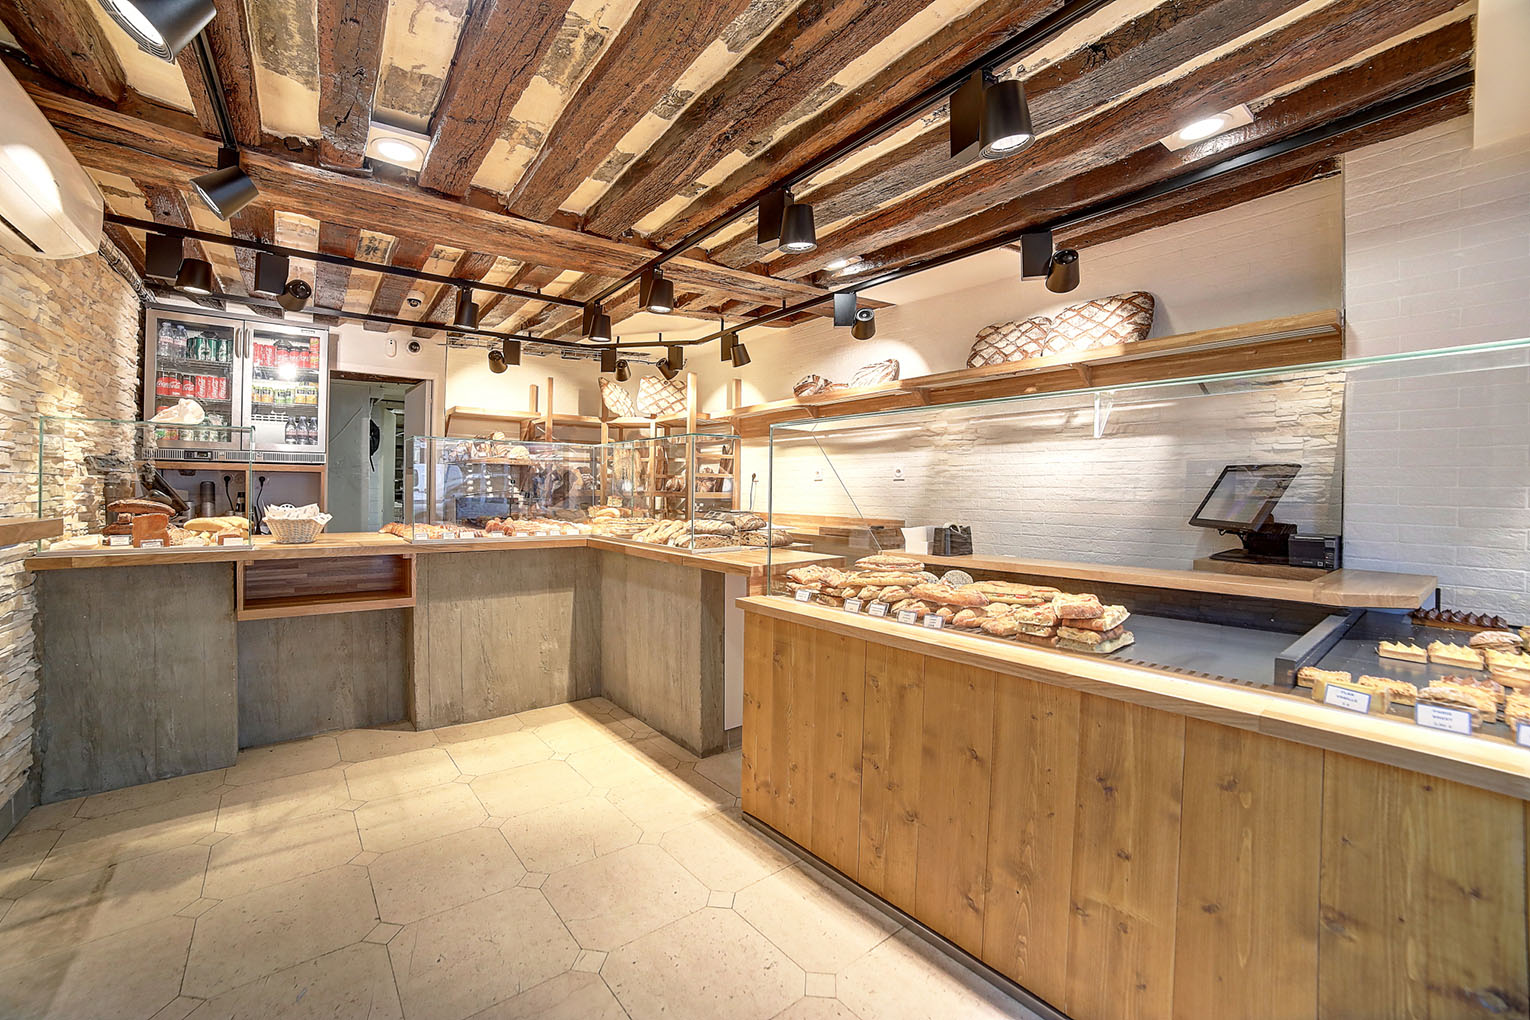 boulangerie_farineo26